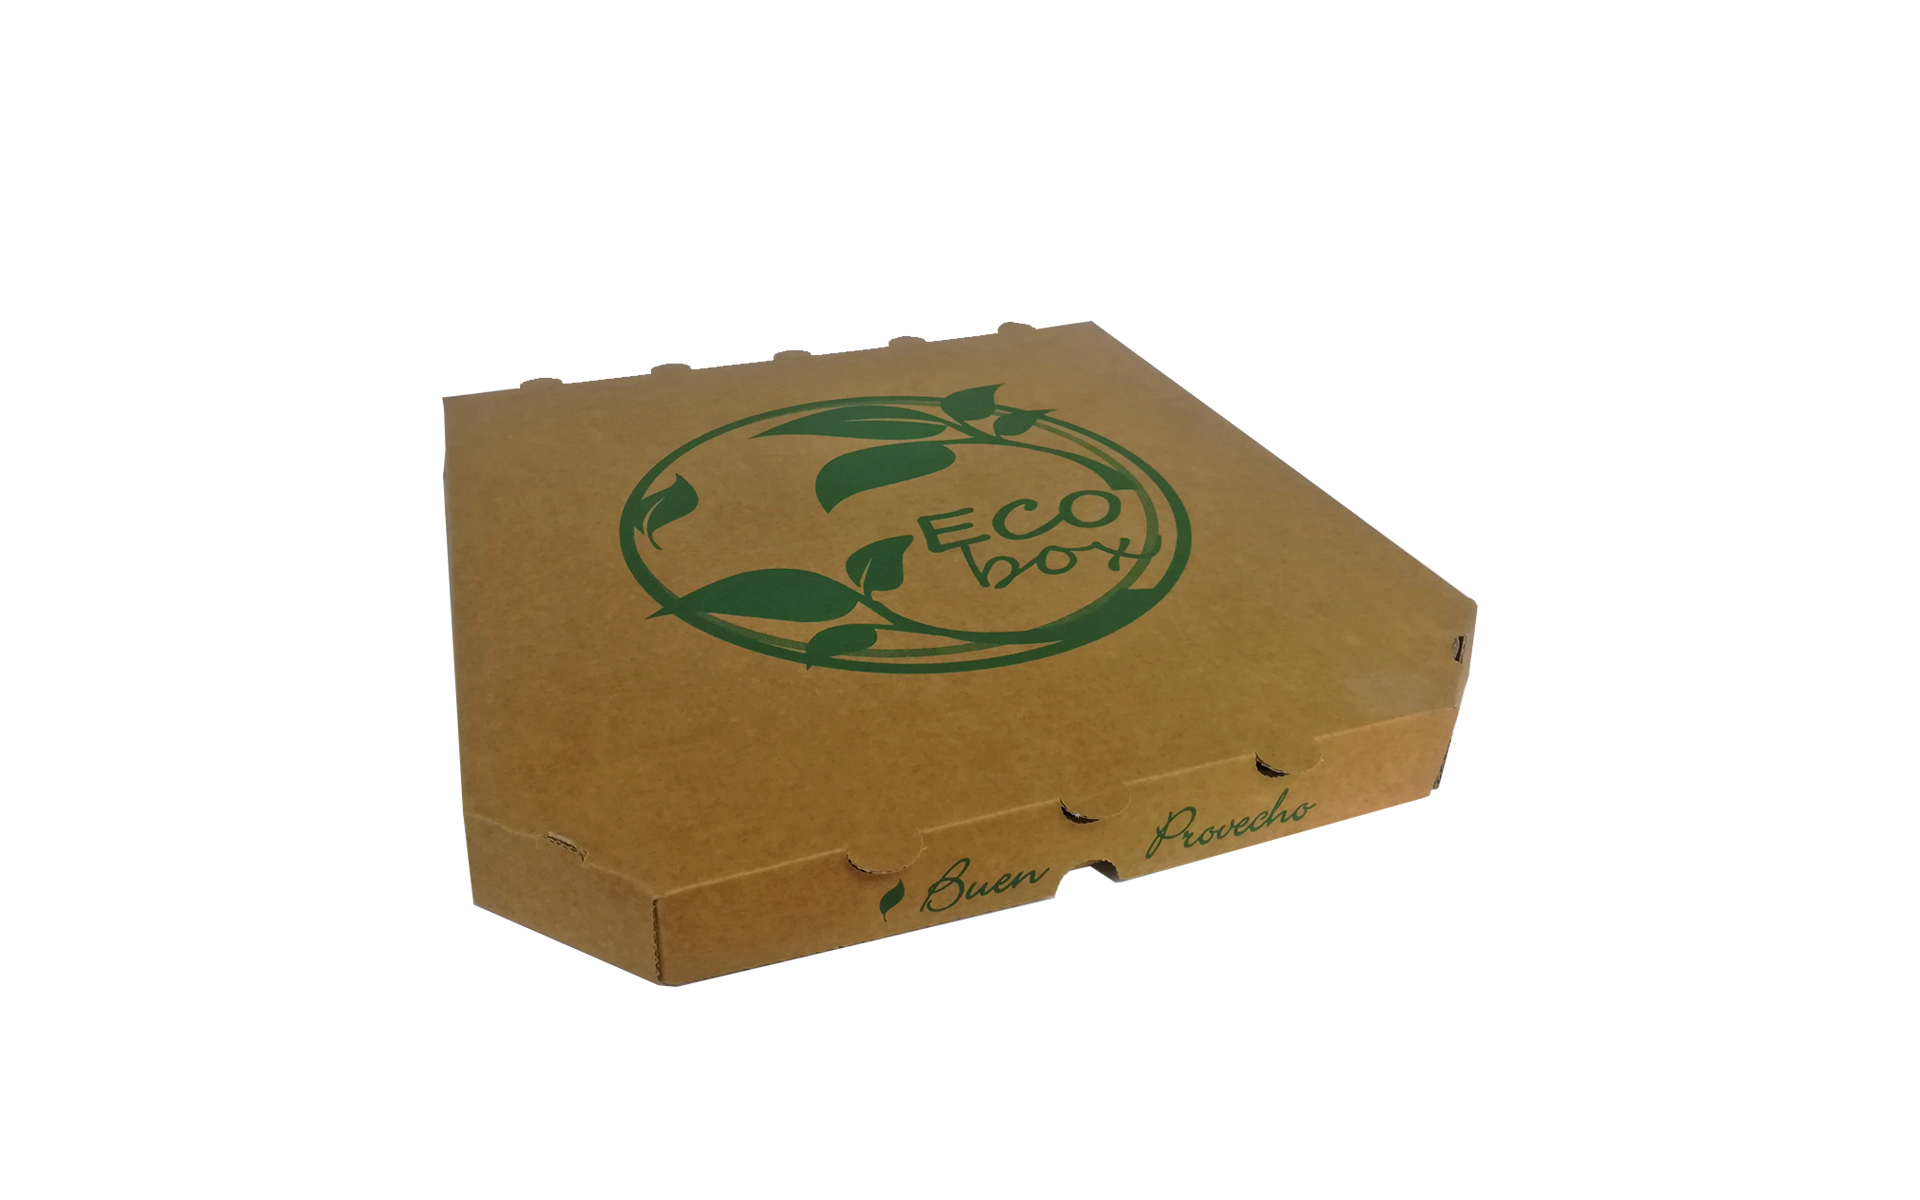 Caja pizza kraft Ecobox 29